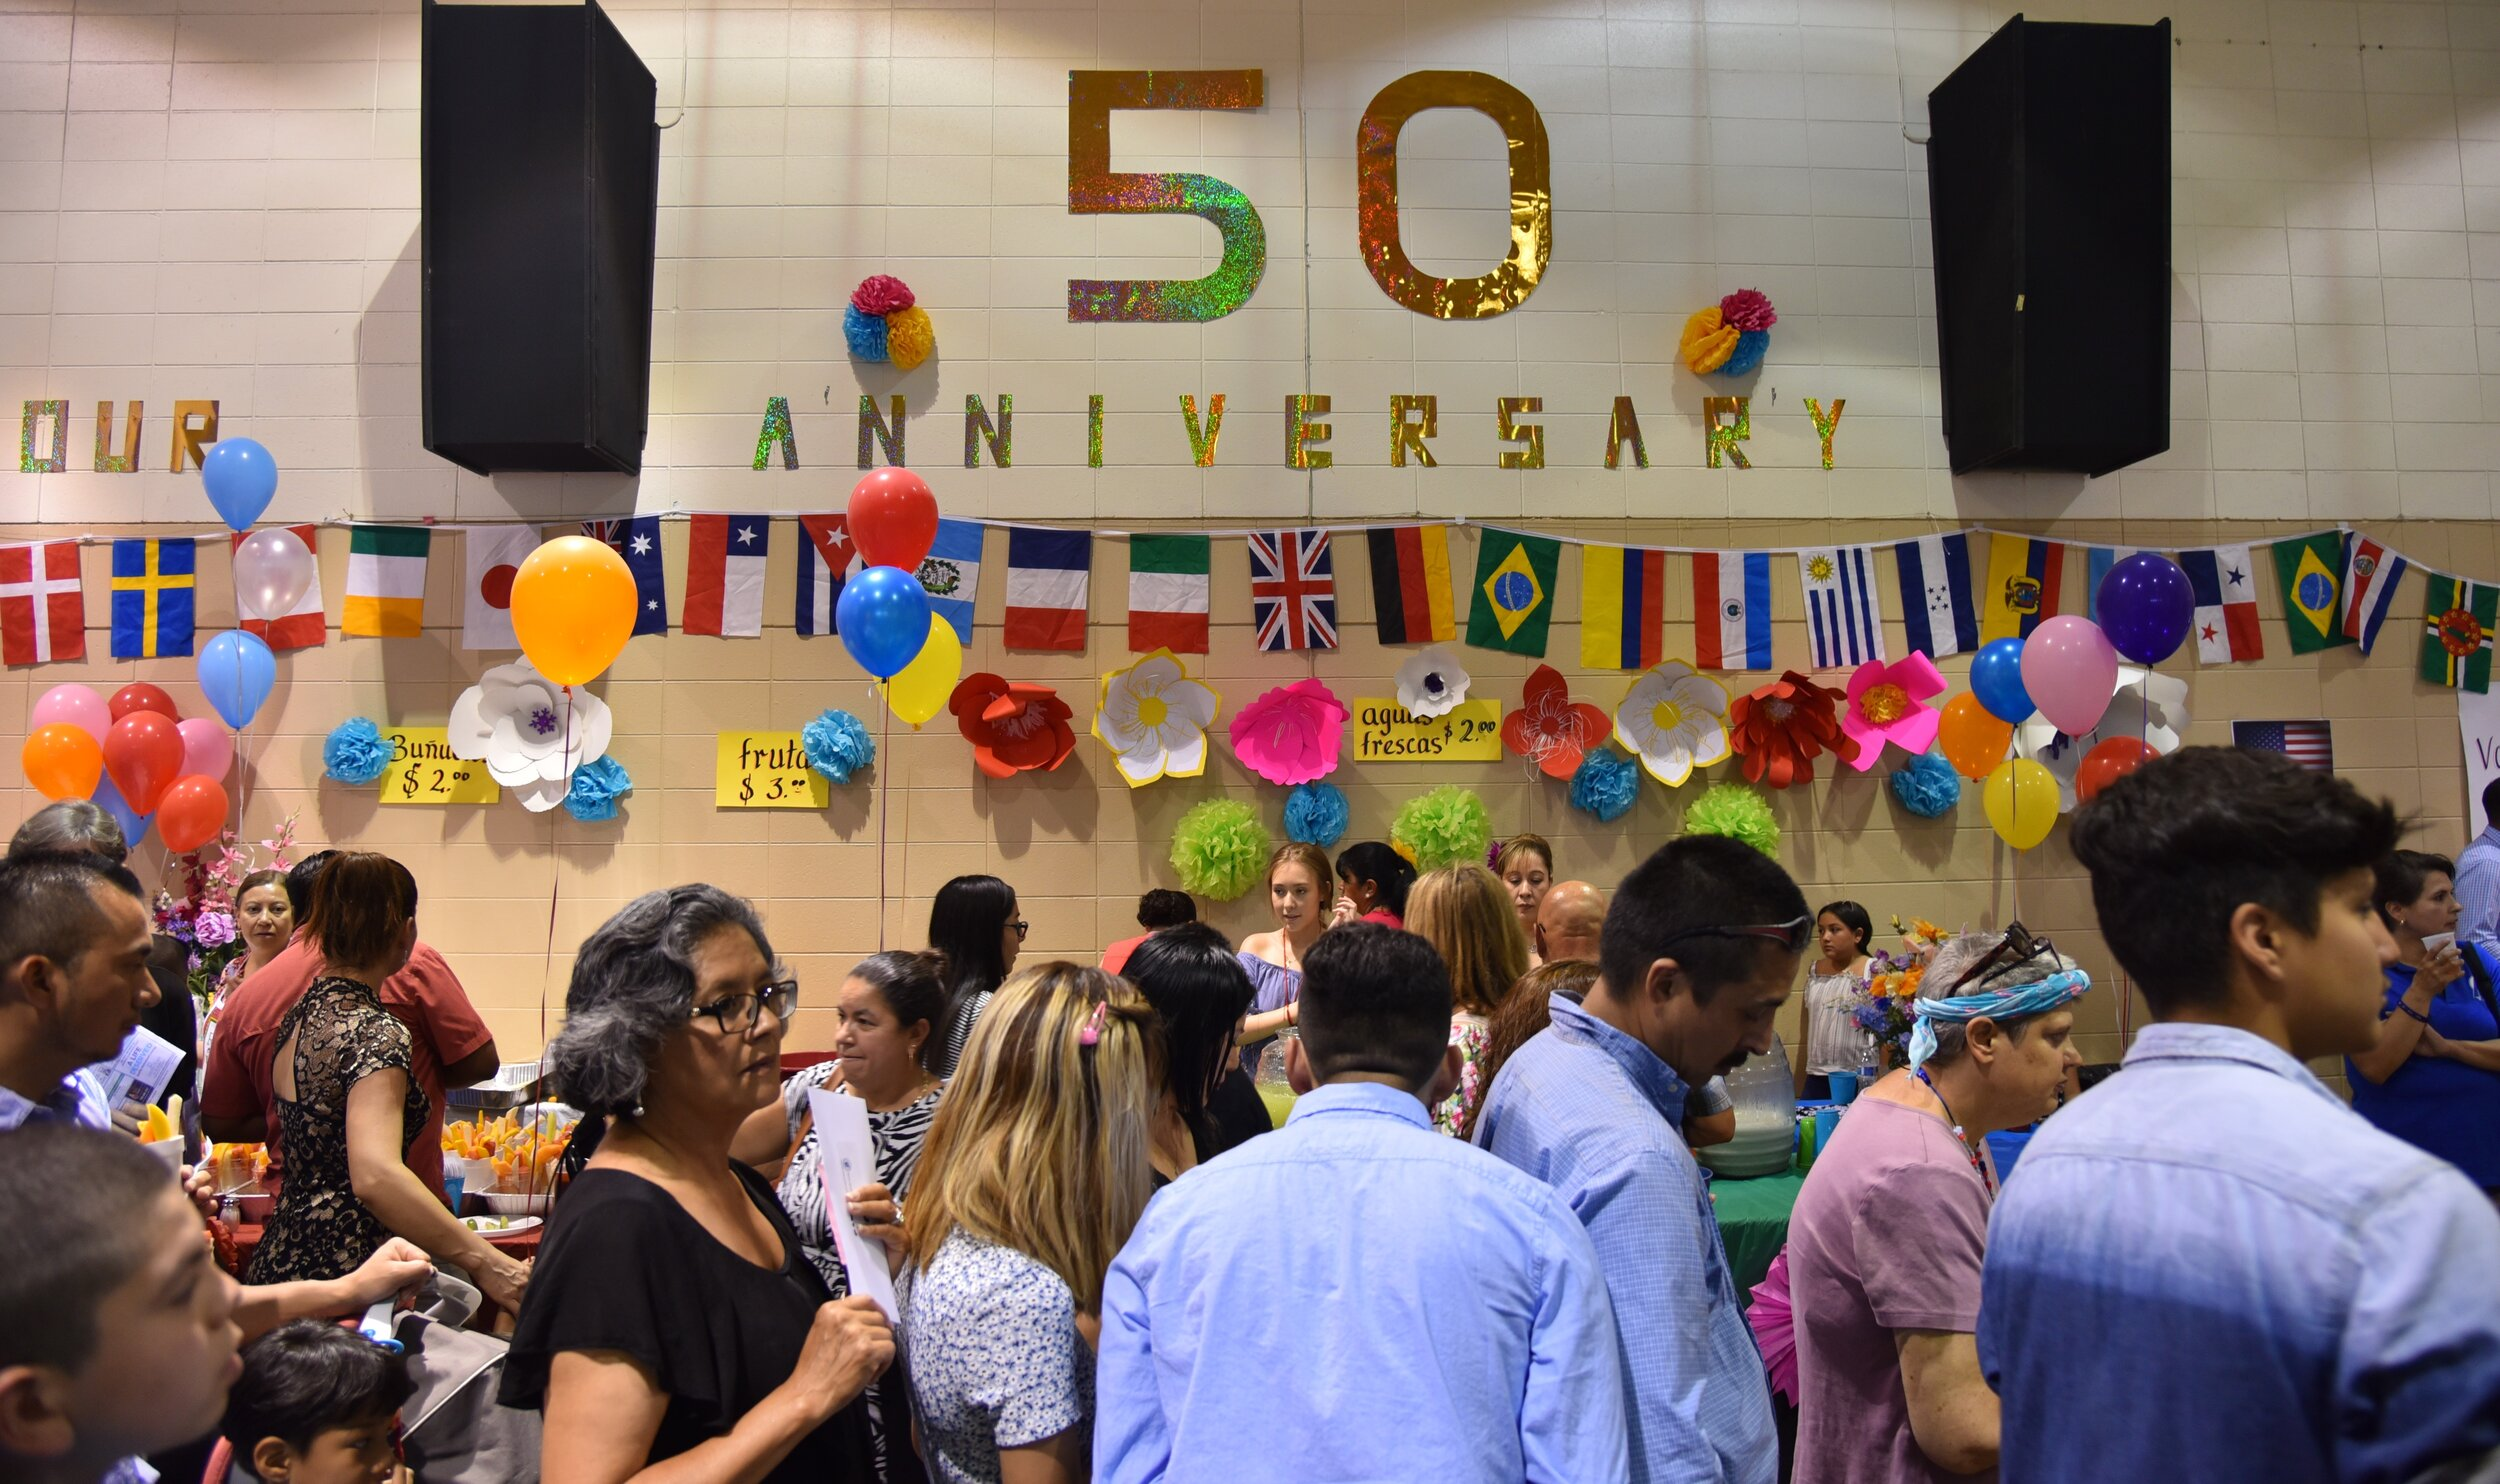 PARISH LIFE - With parishioners representing over 60 nations, the diversity of our parish community is a constant manifestation to the world of the universality of God's love in the Catholic Church, which is the Body of Christ.